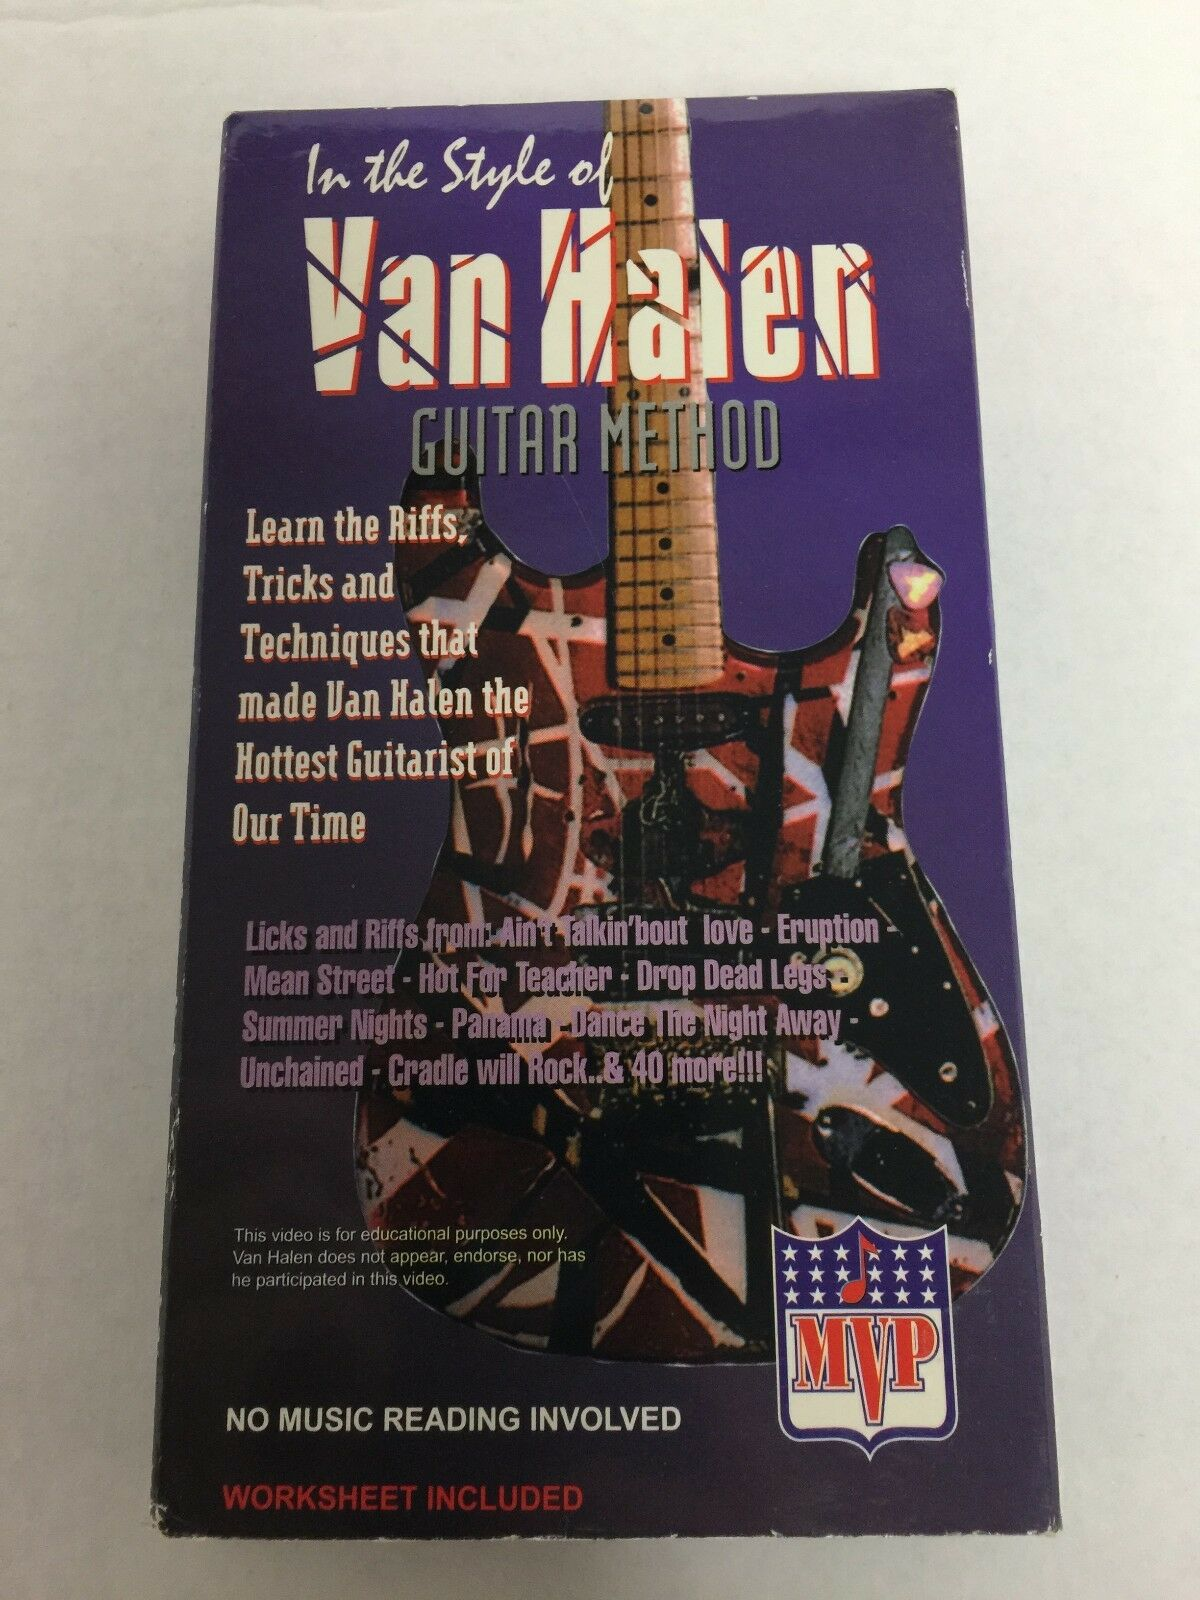 Guitar Method in the style of Van Halen VHS Video Tape